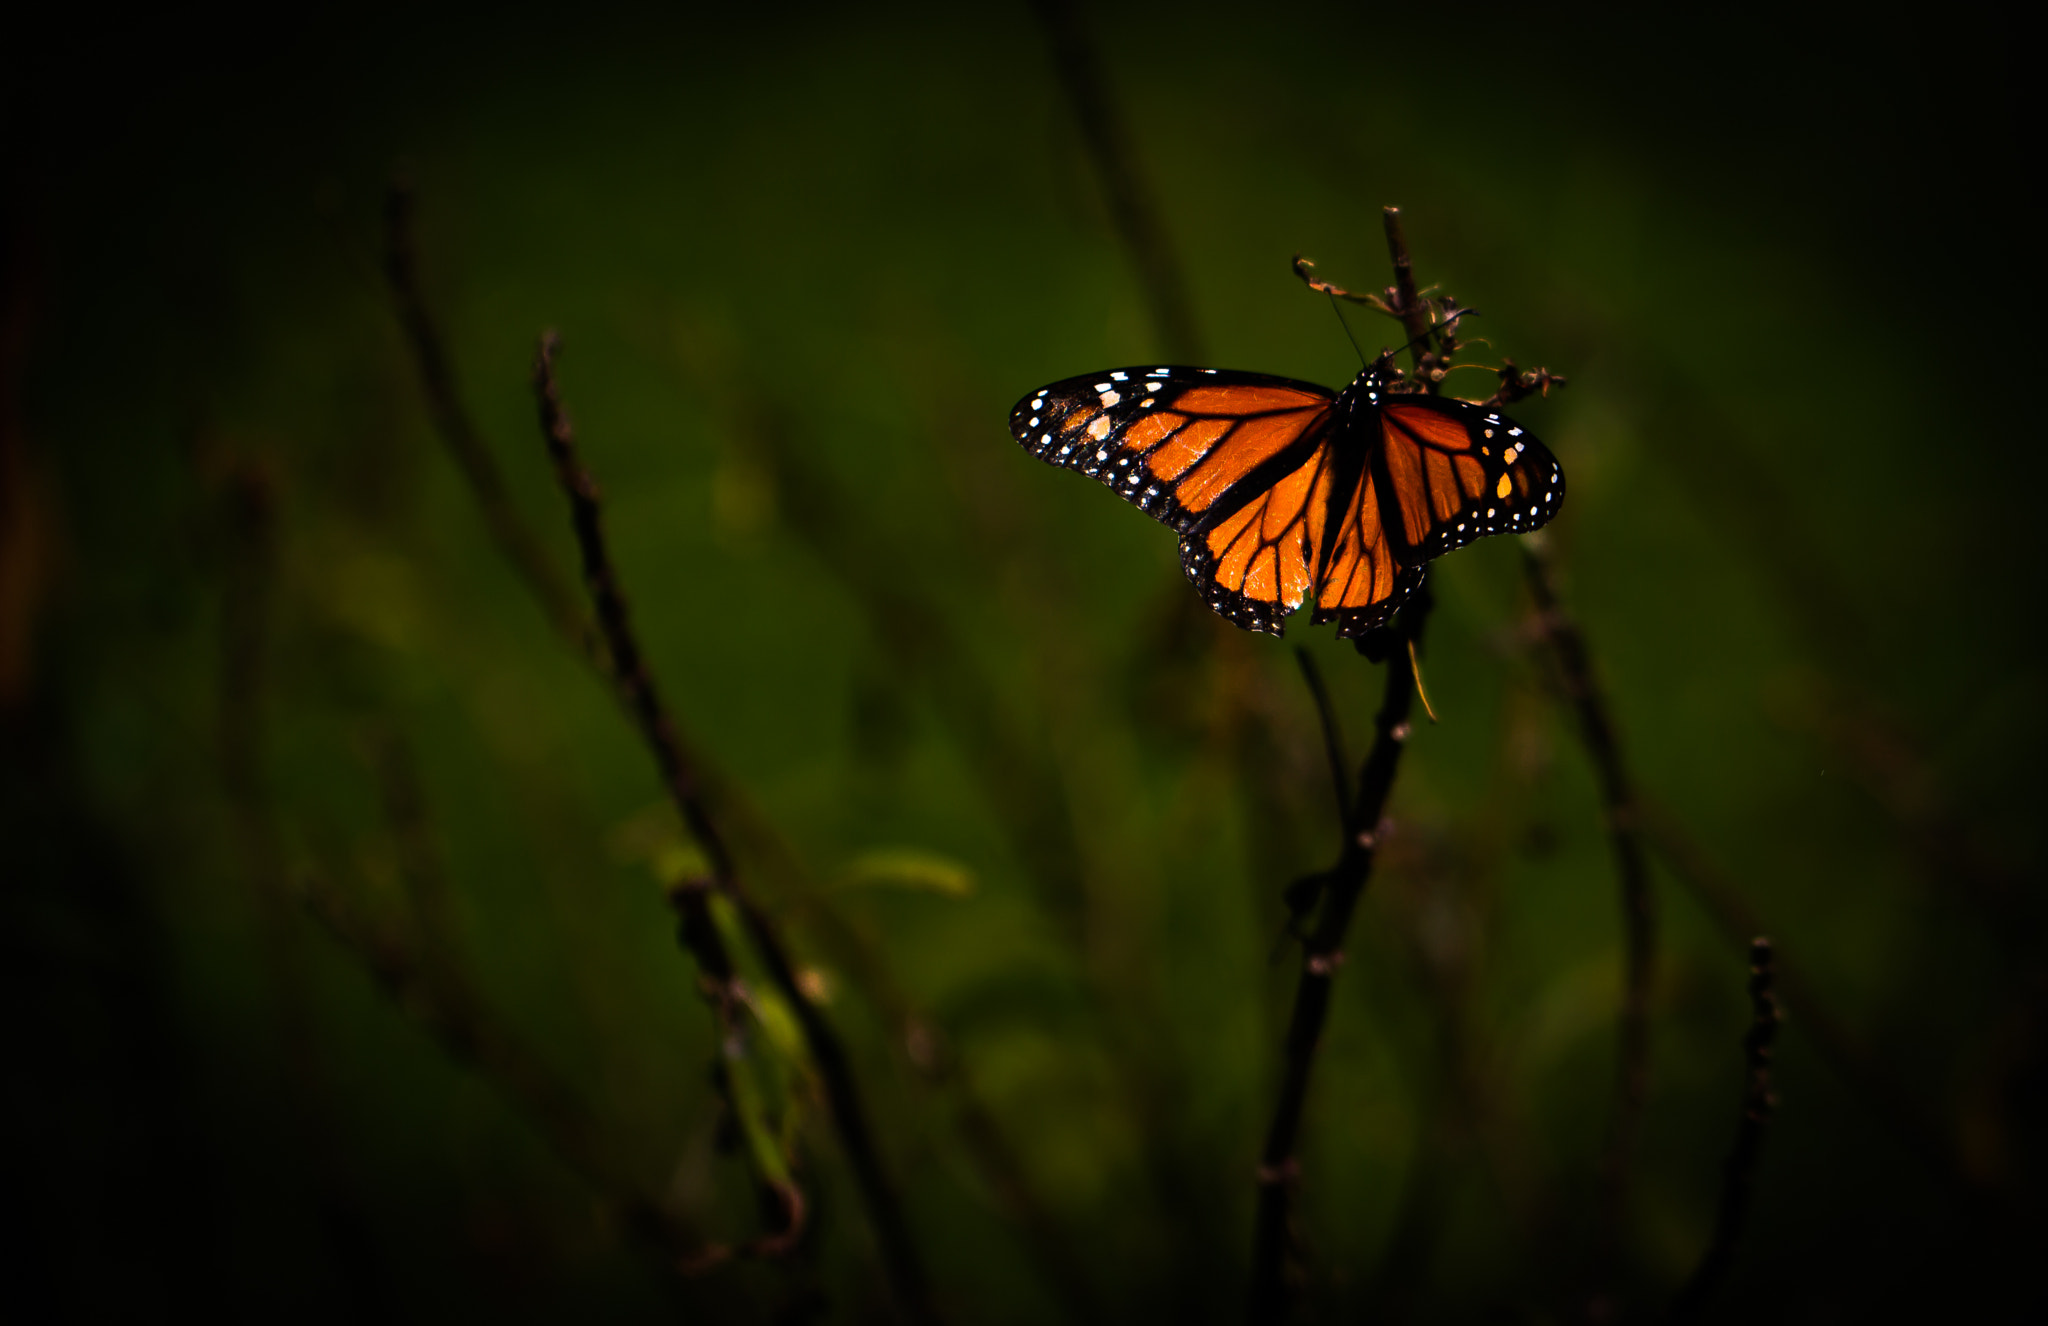 Photograph Butterfly in the dark by Cyndy Knudson on 500px